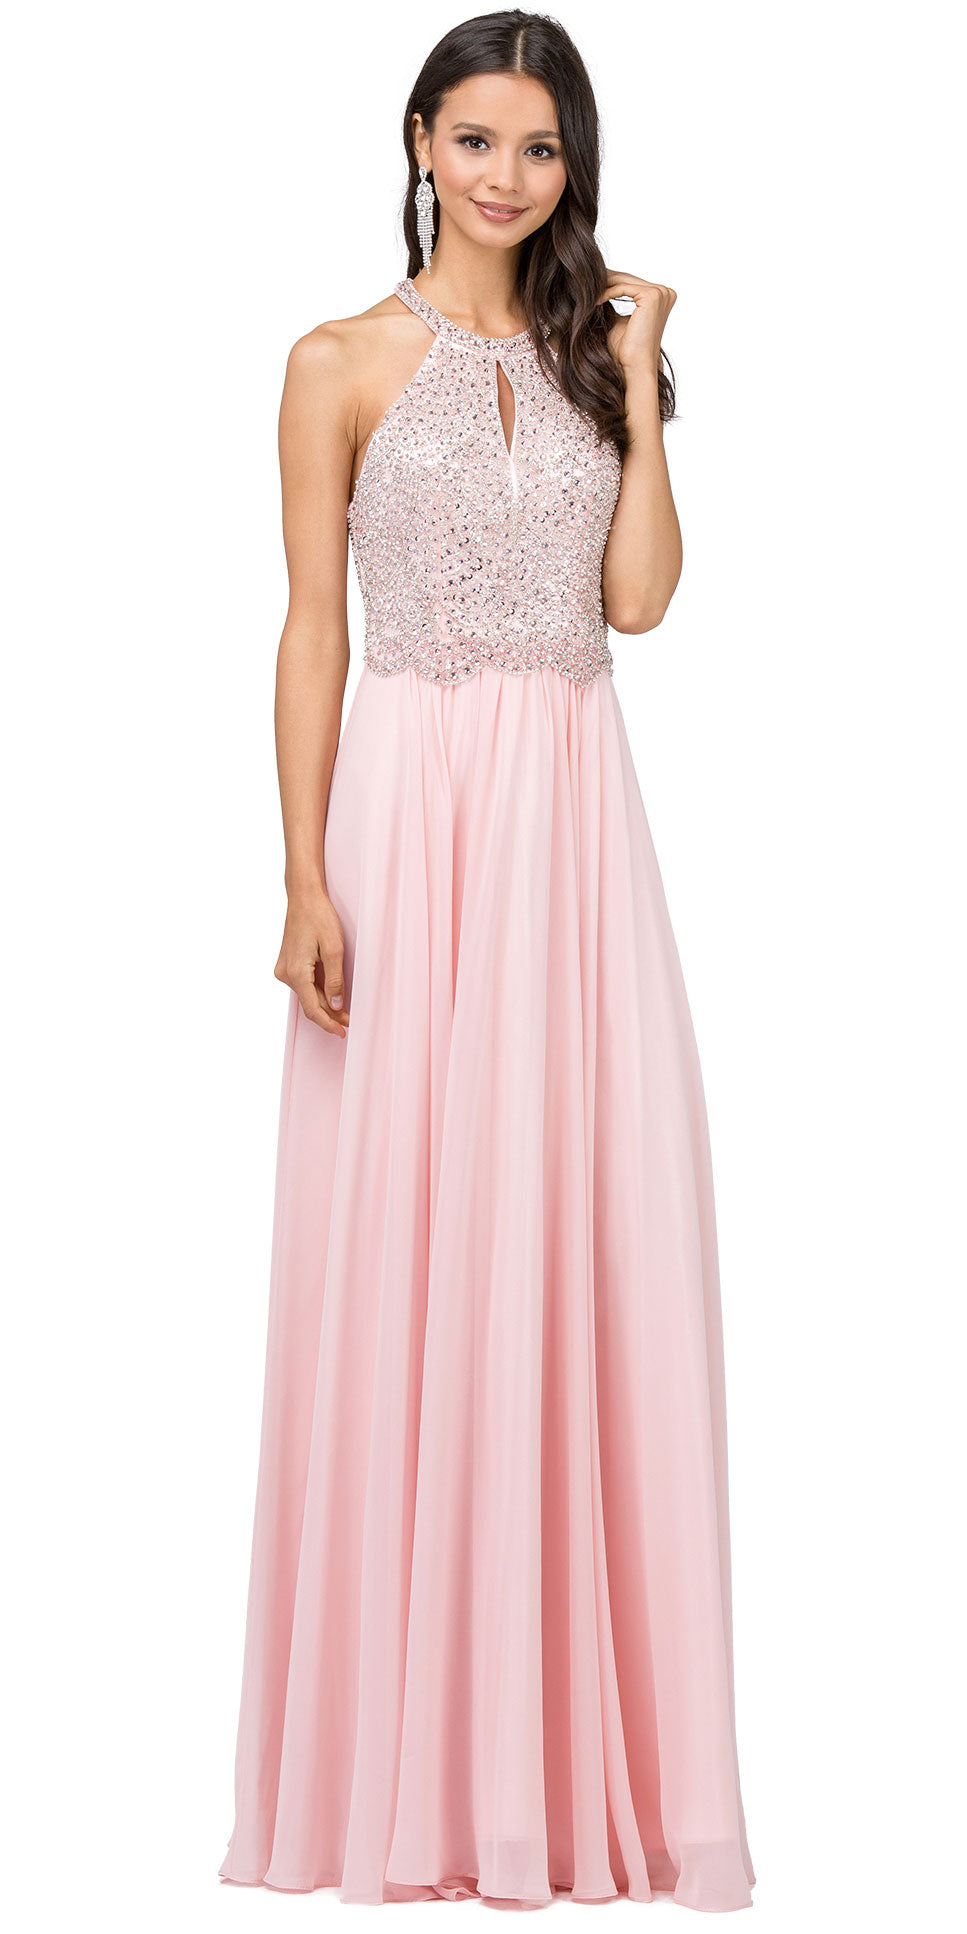 Image of Embellished Bodice & Back Straps Long Prom Dress in Blush